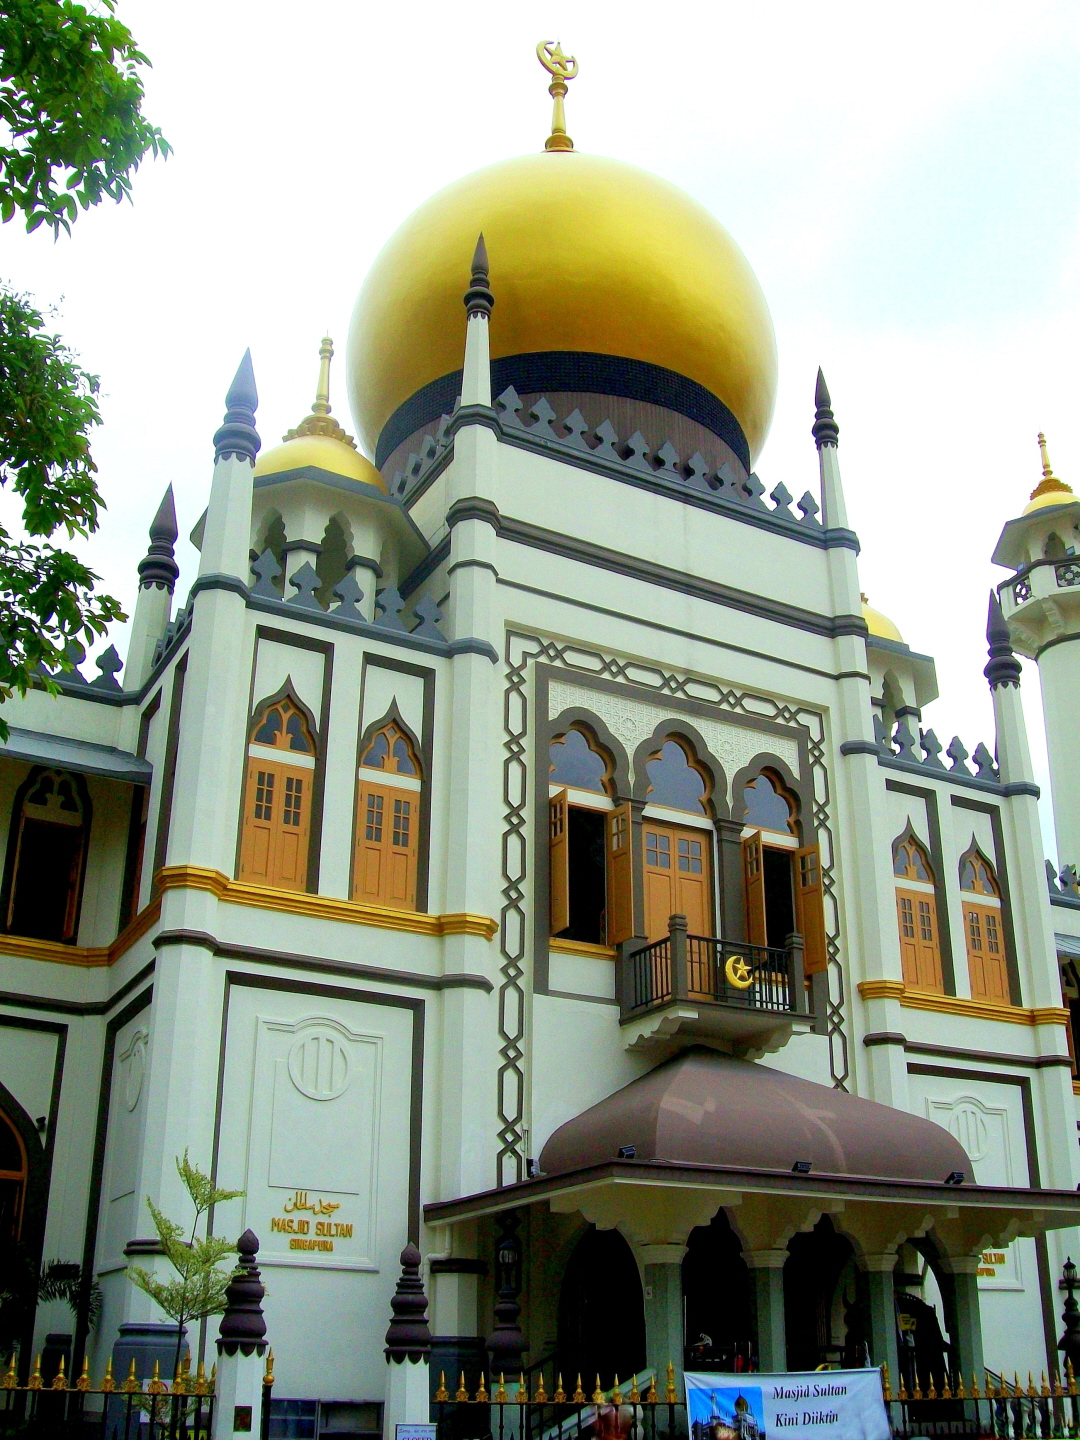 Exotic Masjid Sultan - (in the Heart of the Arab St. Tourist Center)- Singapore